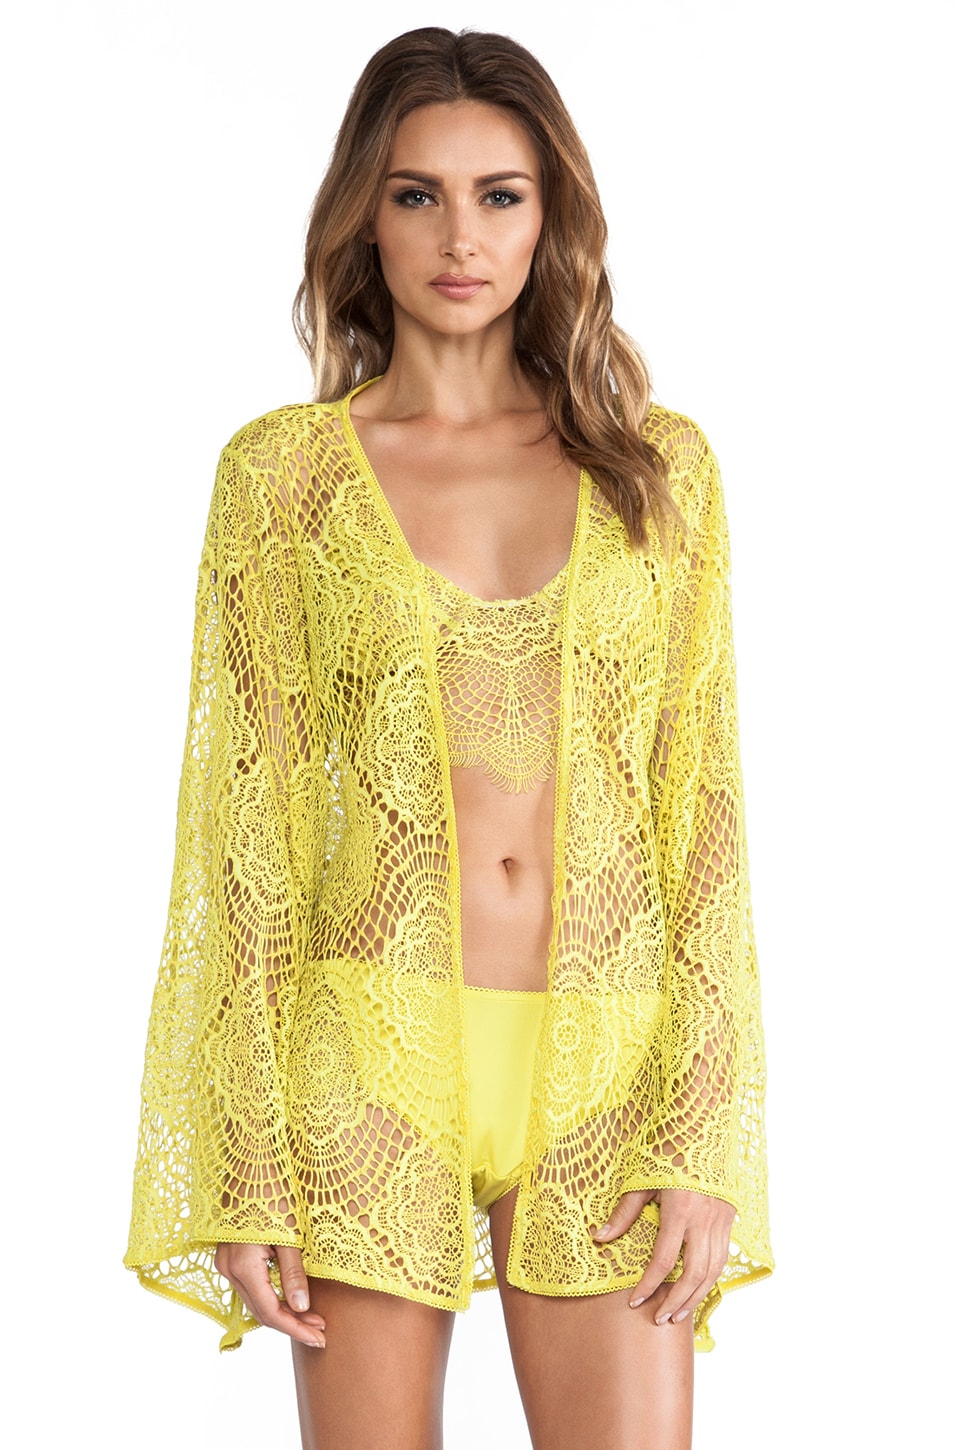 For Love & Lemons Dream Girl Robe in Chartreuse